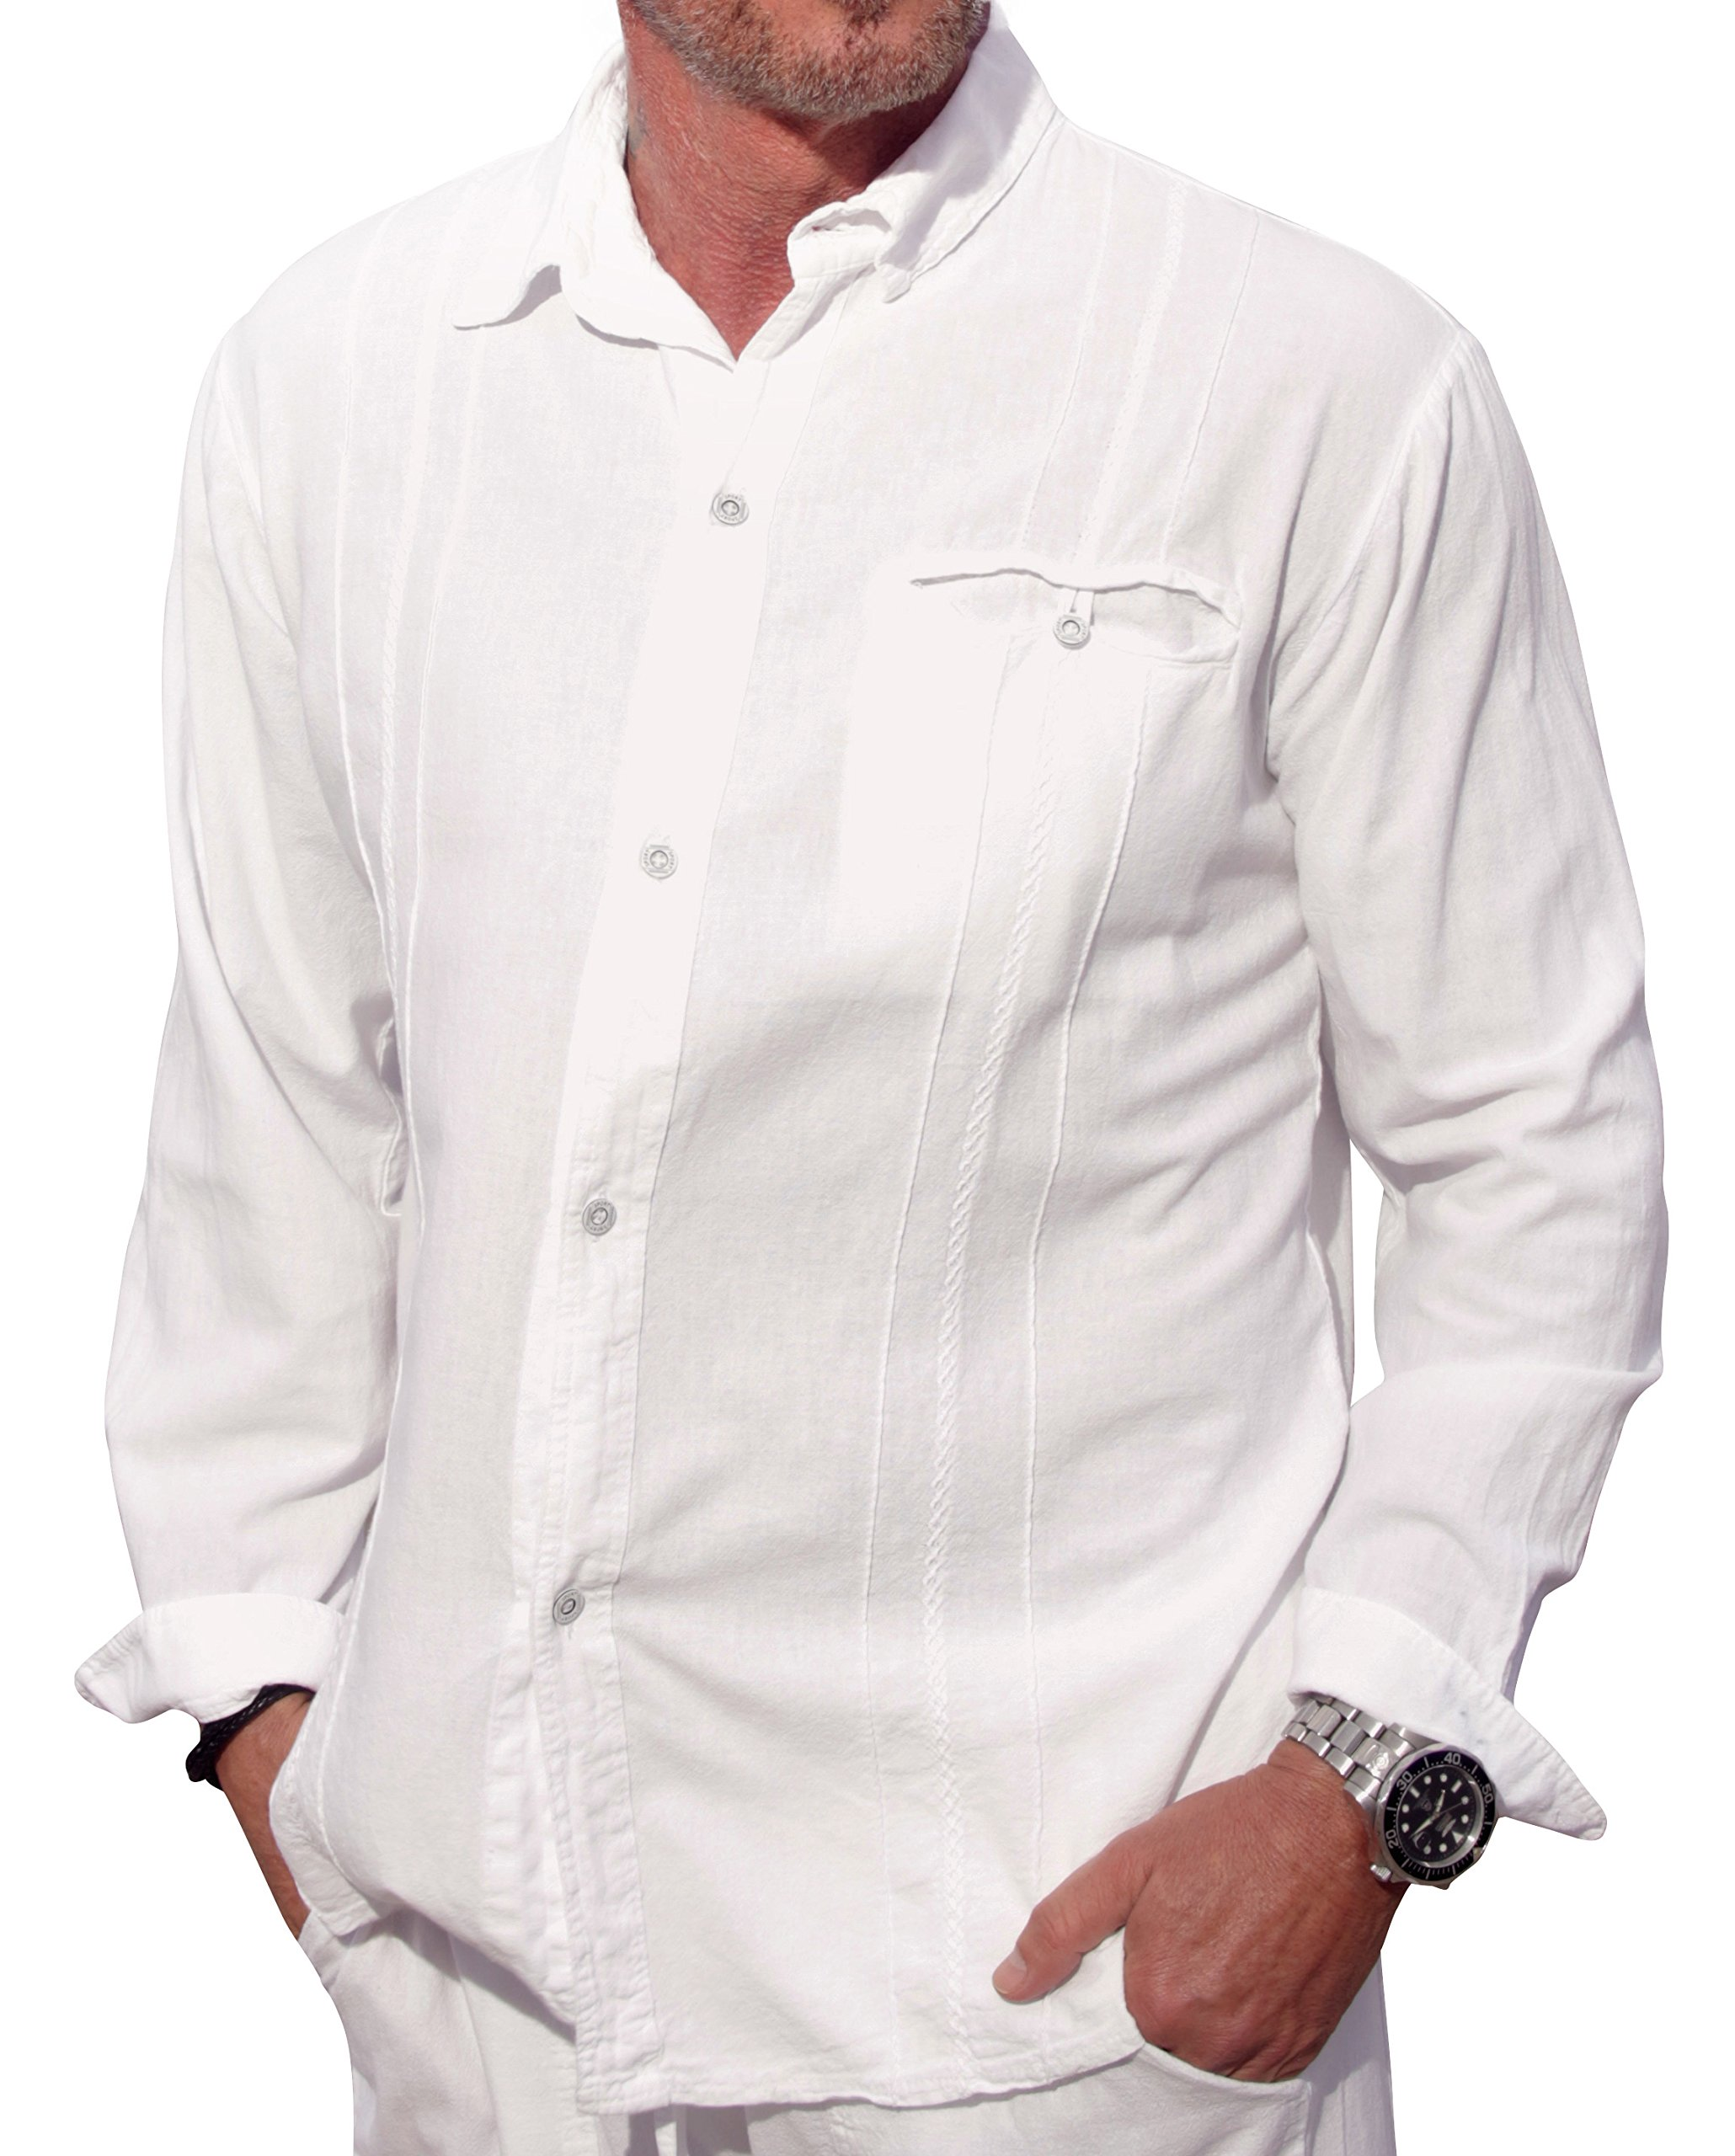 M&B USA Cotton White Long-Sleeve Button Loop Closure Pocket Organic Embroidered Button Down Shirt (XX-Large, White) by M&B USA (Image #1)